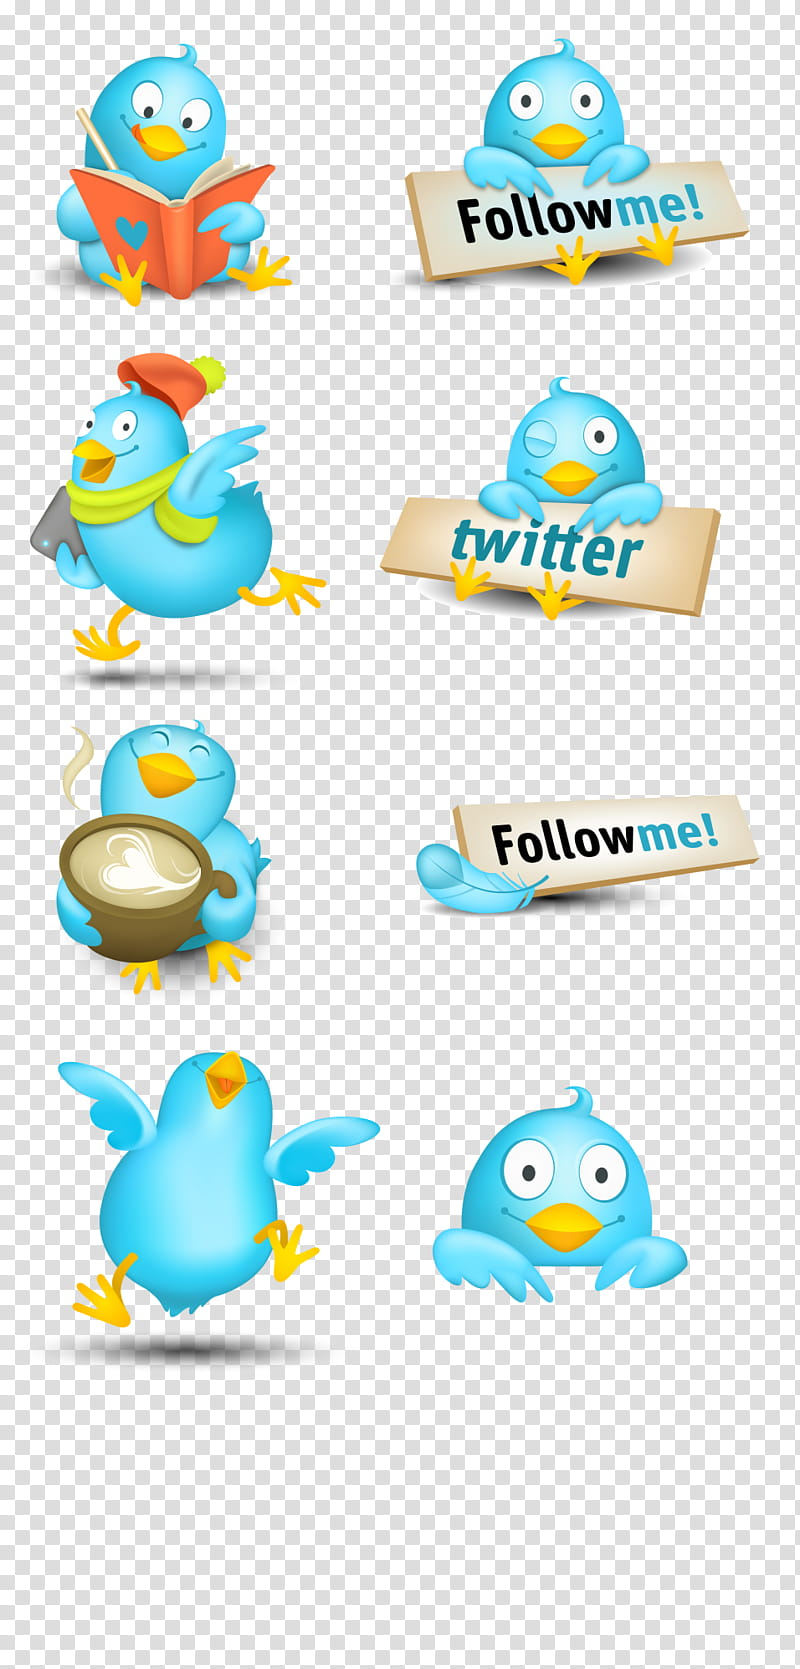 Twitter follow clipart vector free library Twitter , follow me! twitter follow me! bird illustration ... vector free library